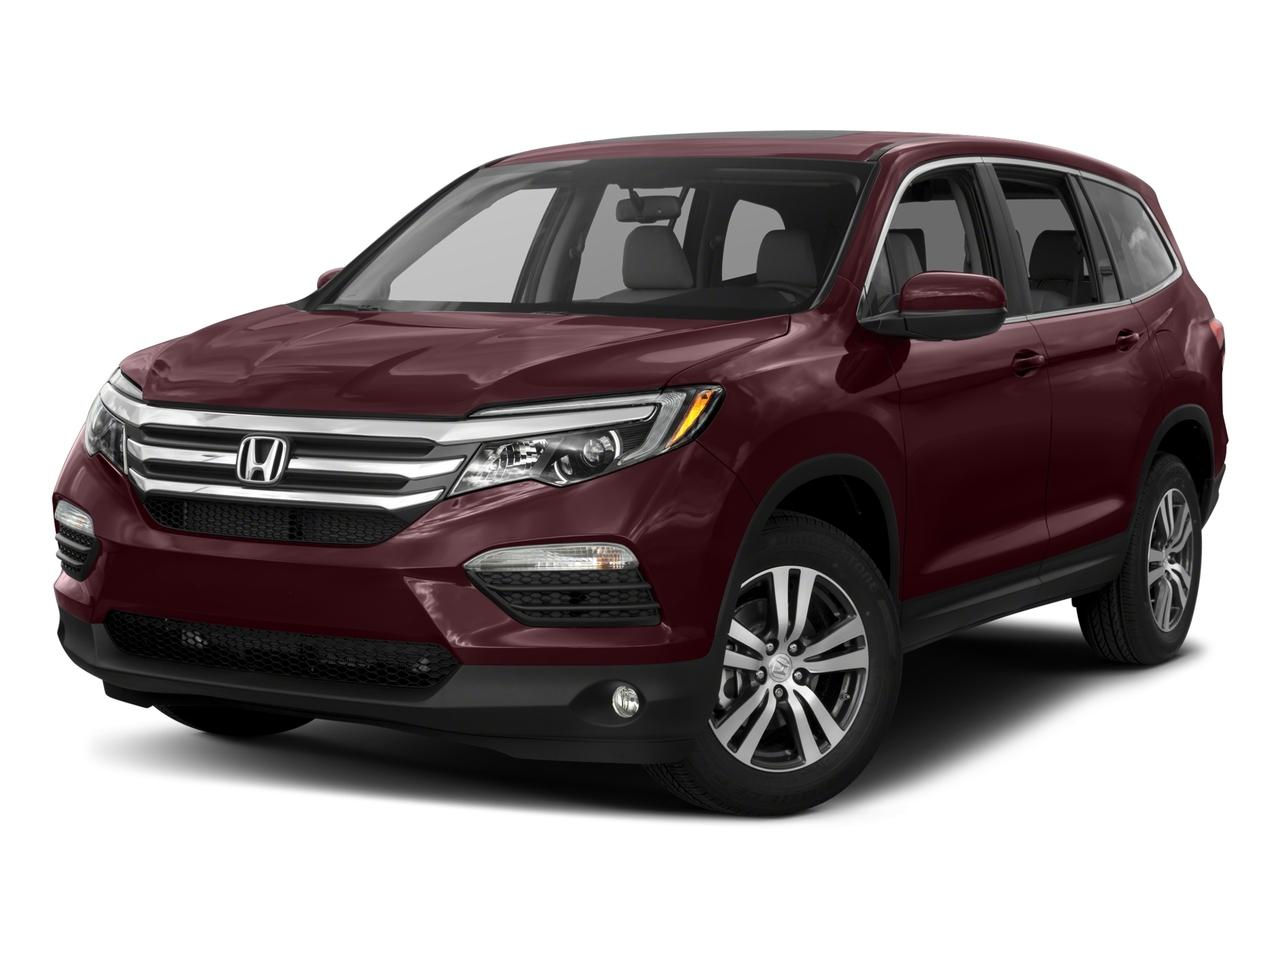 2017 Honda Pilot Vehicle Photo in Annapolis, MD 21401